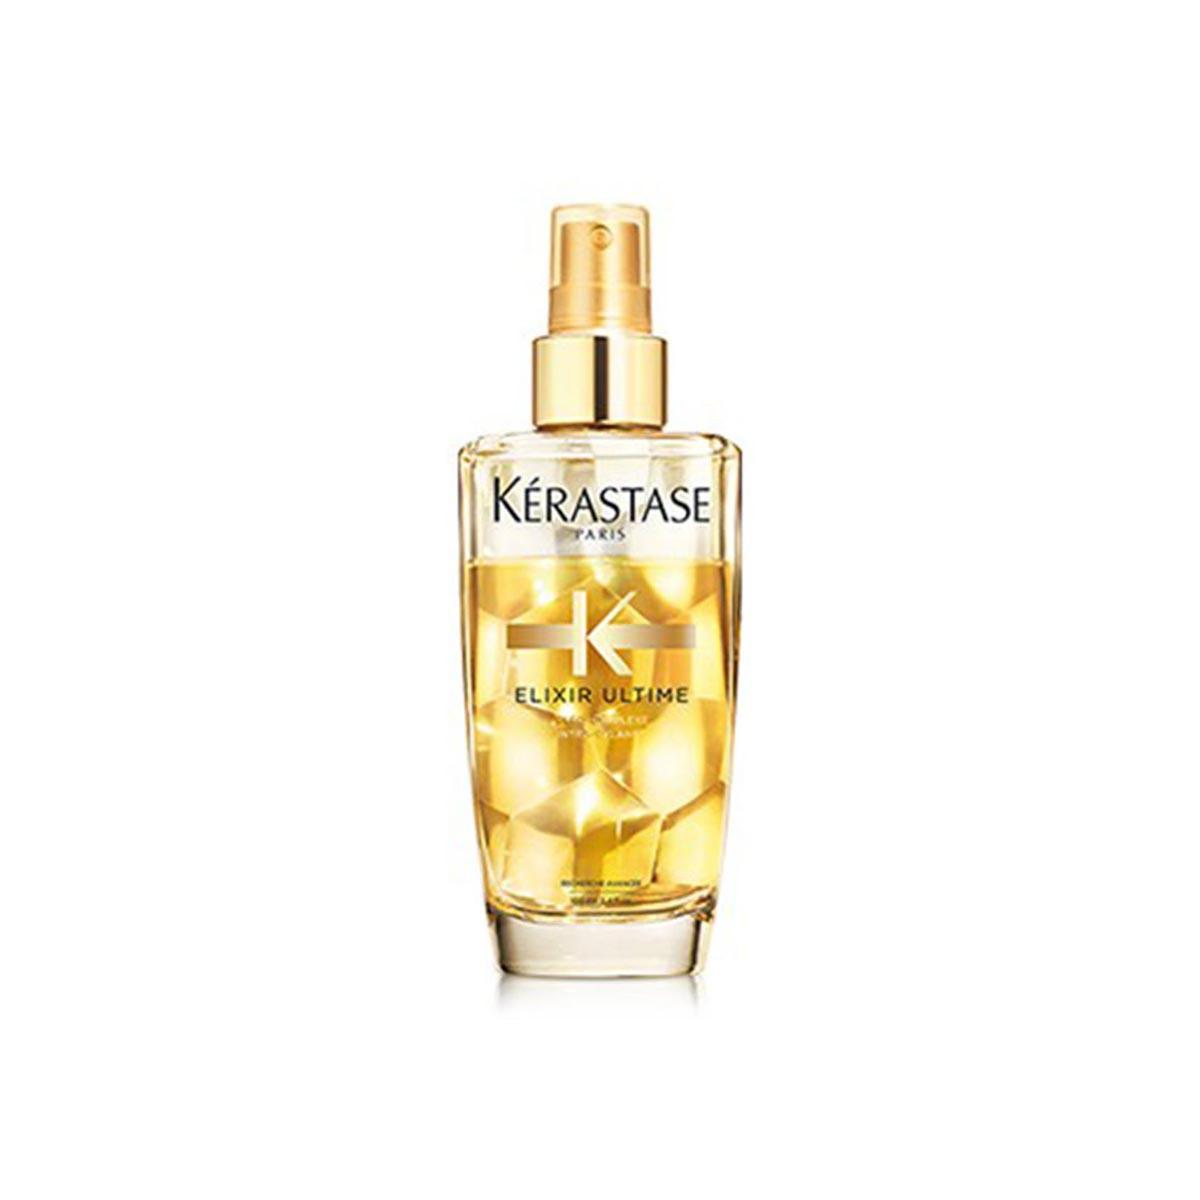 Kerastase fragrances K Elixir Ultime Oleocomplexe Fine To Normal Hair Oil Mist 100ml